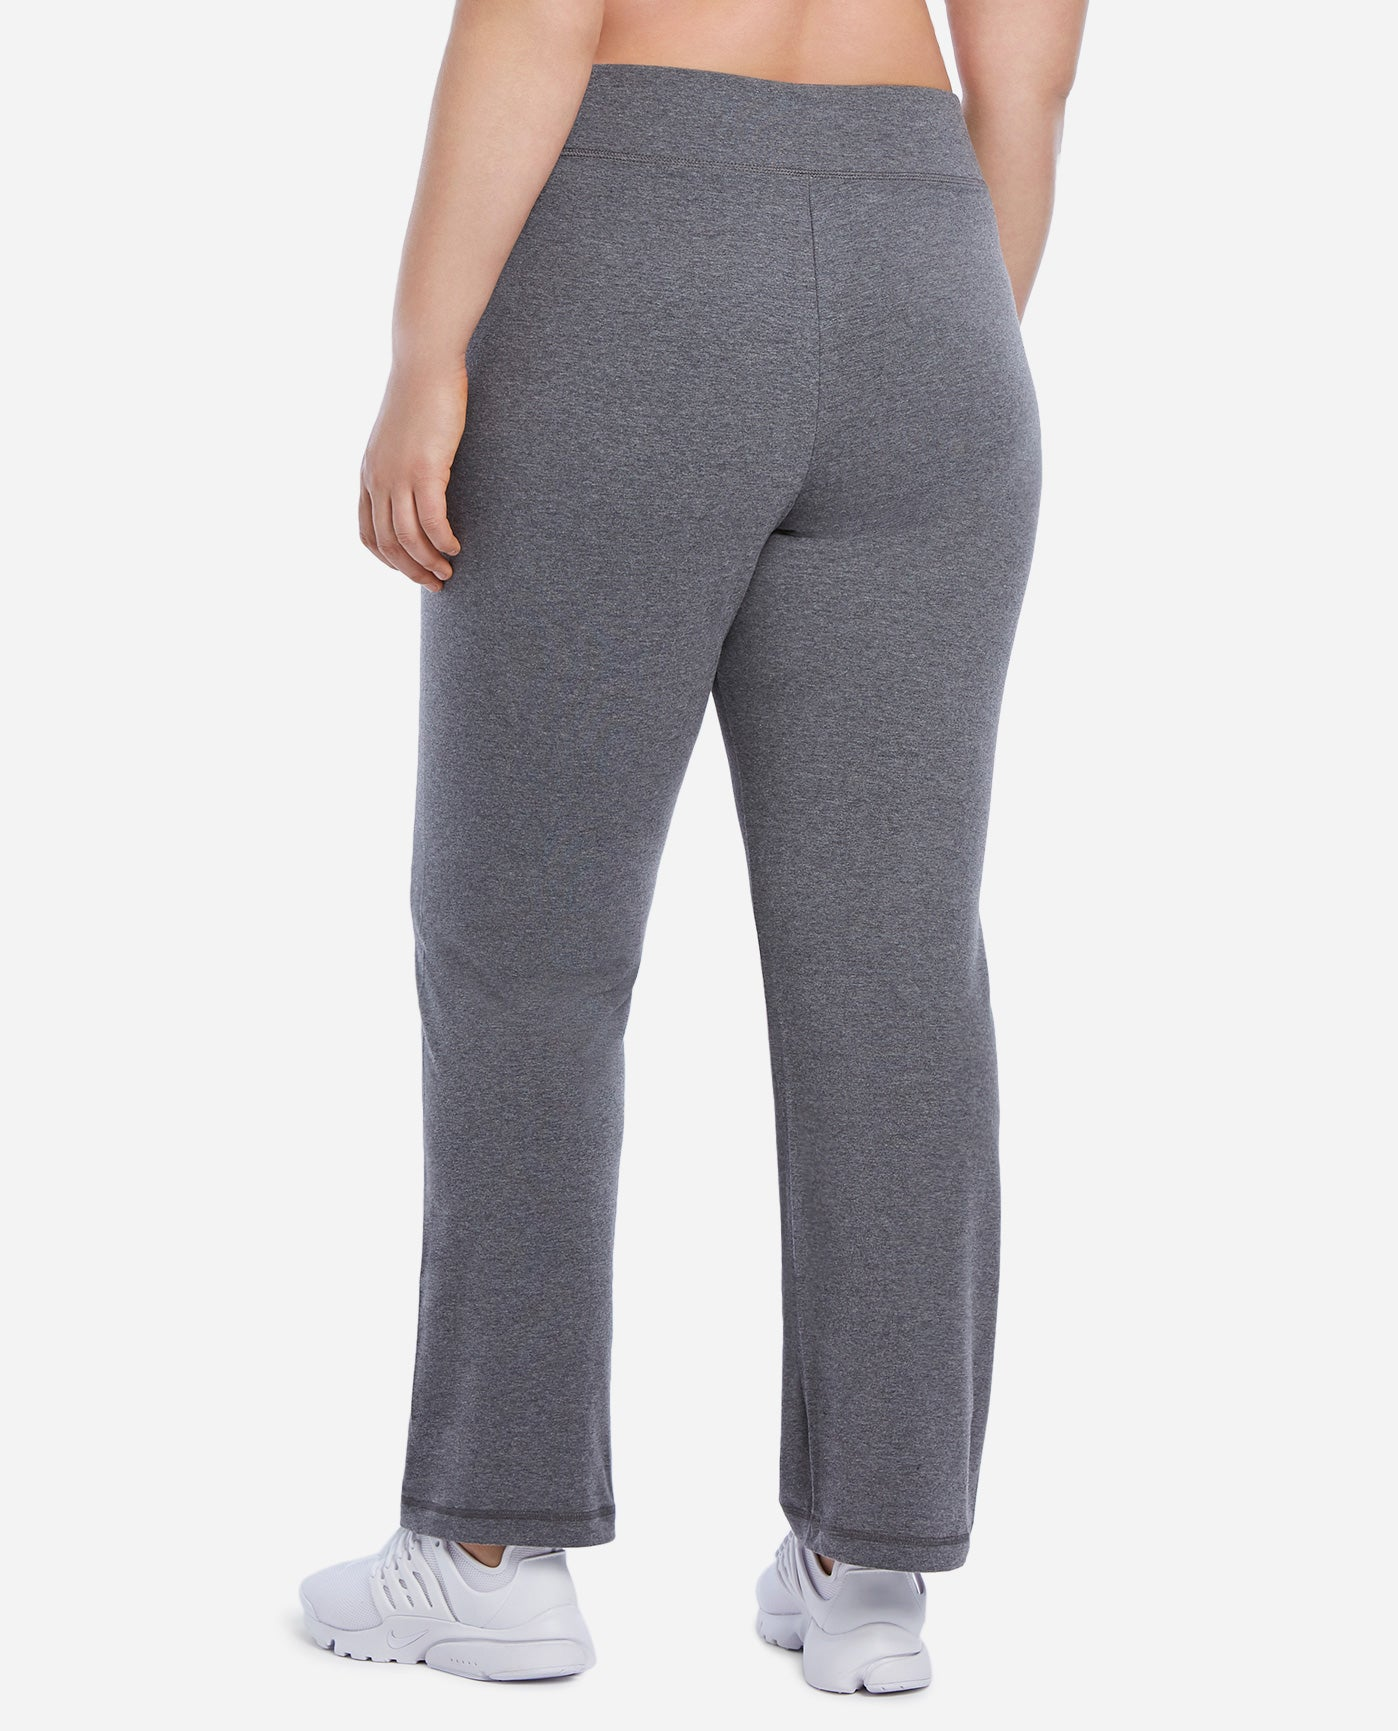 d83a30db872 Women s Essentials Yoga Pant